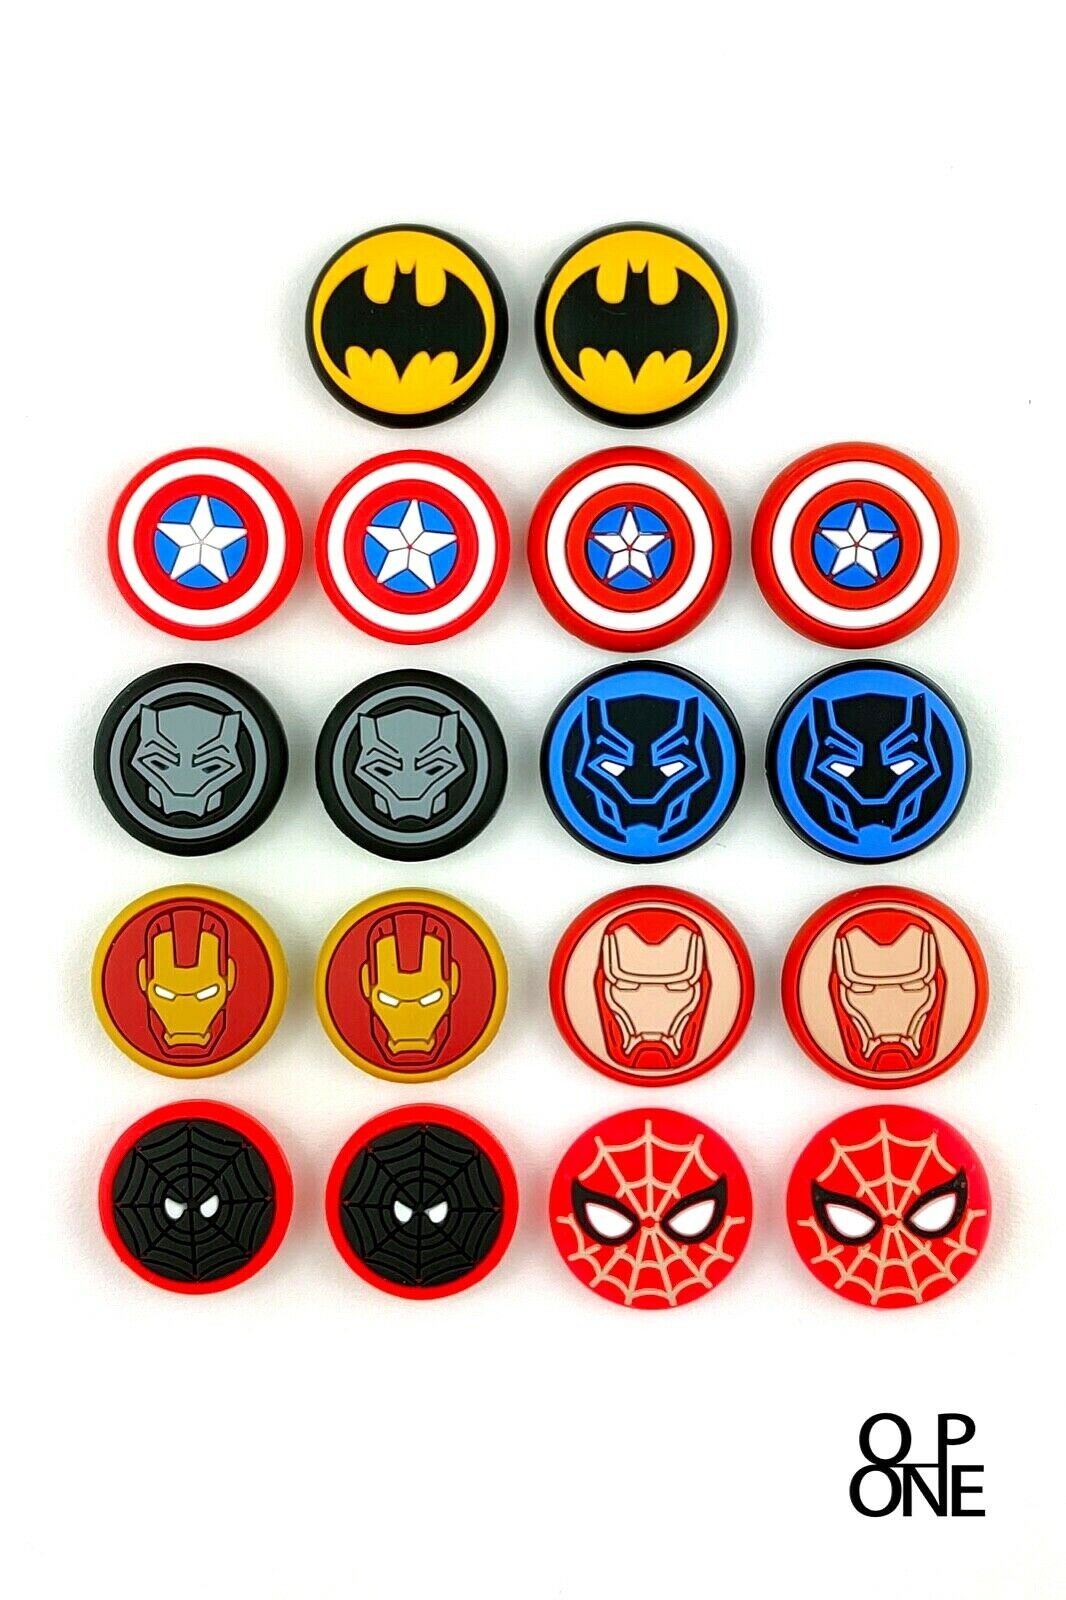 2x Superhero Controller Thumb Grips Caps Cover for Xbox One, PS4, Xbox X & PS5